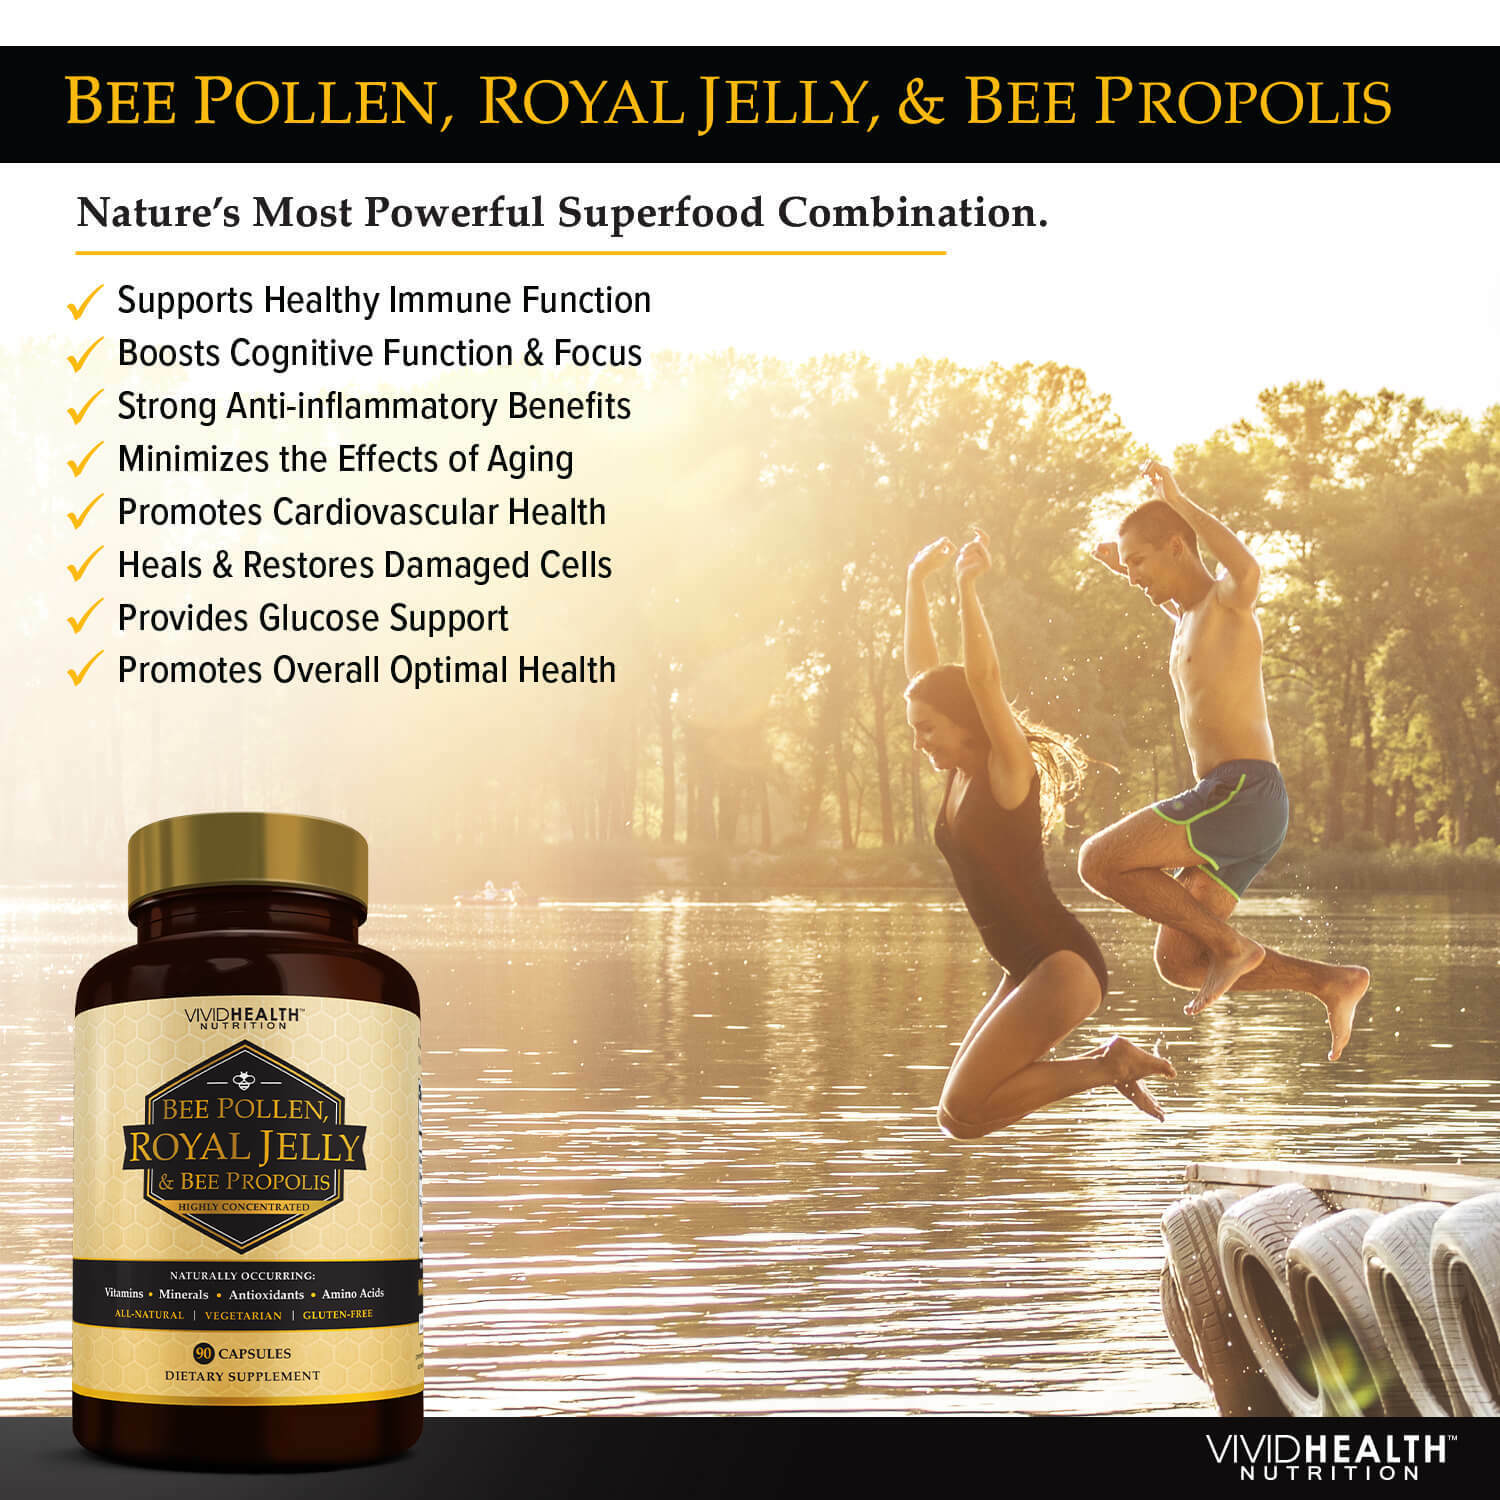 Immune Boosting, Pure ROYAL JELLY BEE POLLEN Supplement w/ BEE PROPOLIS by VHN 1